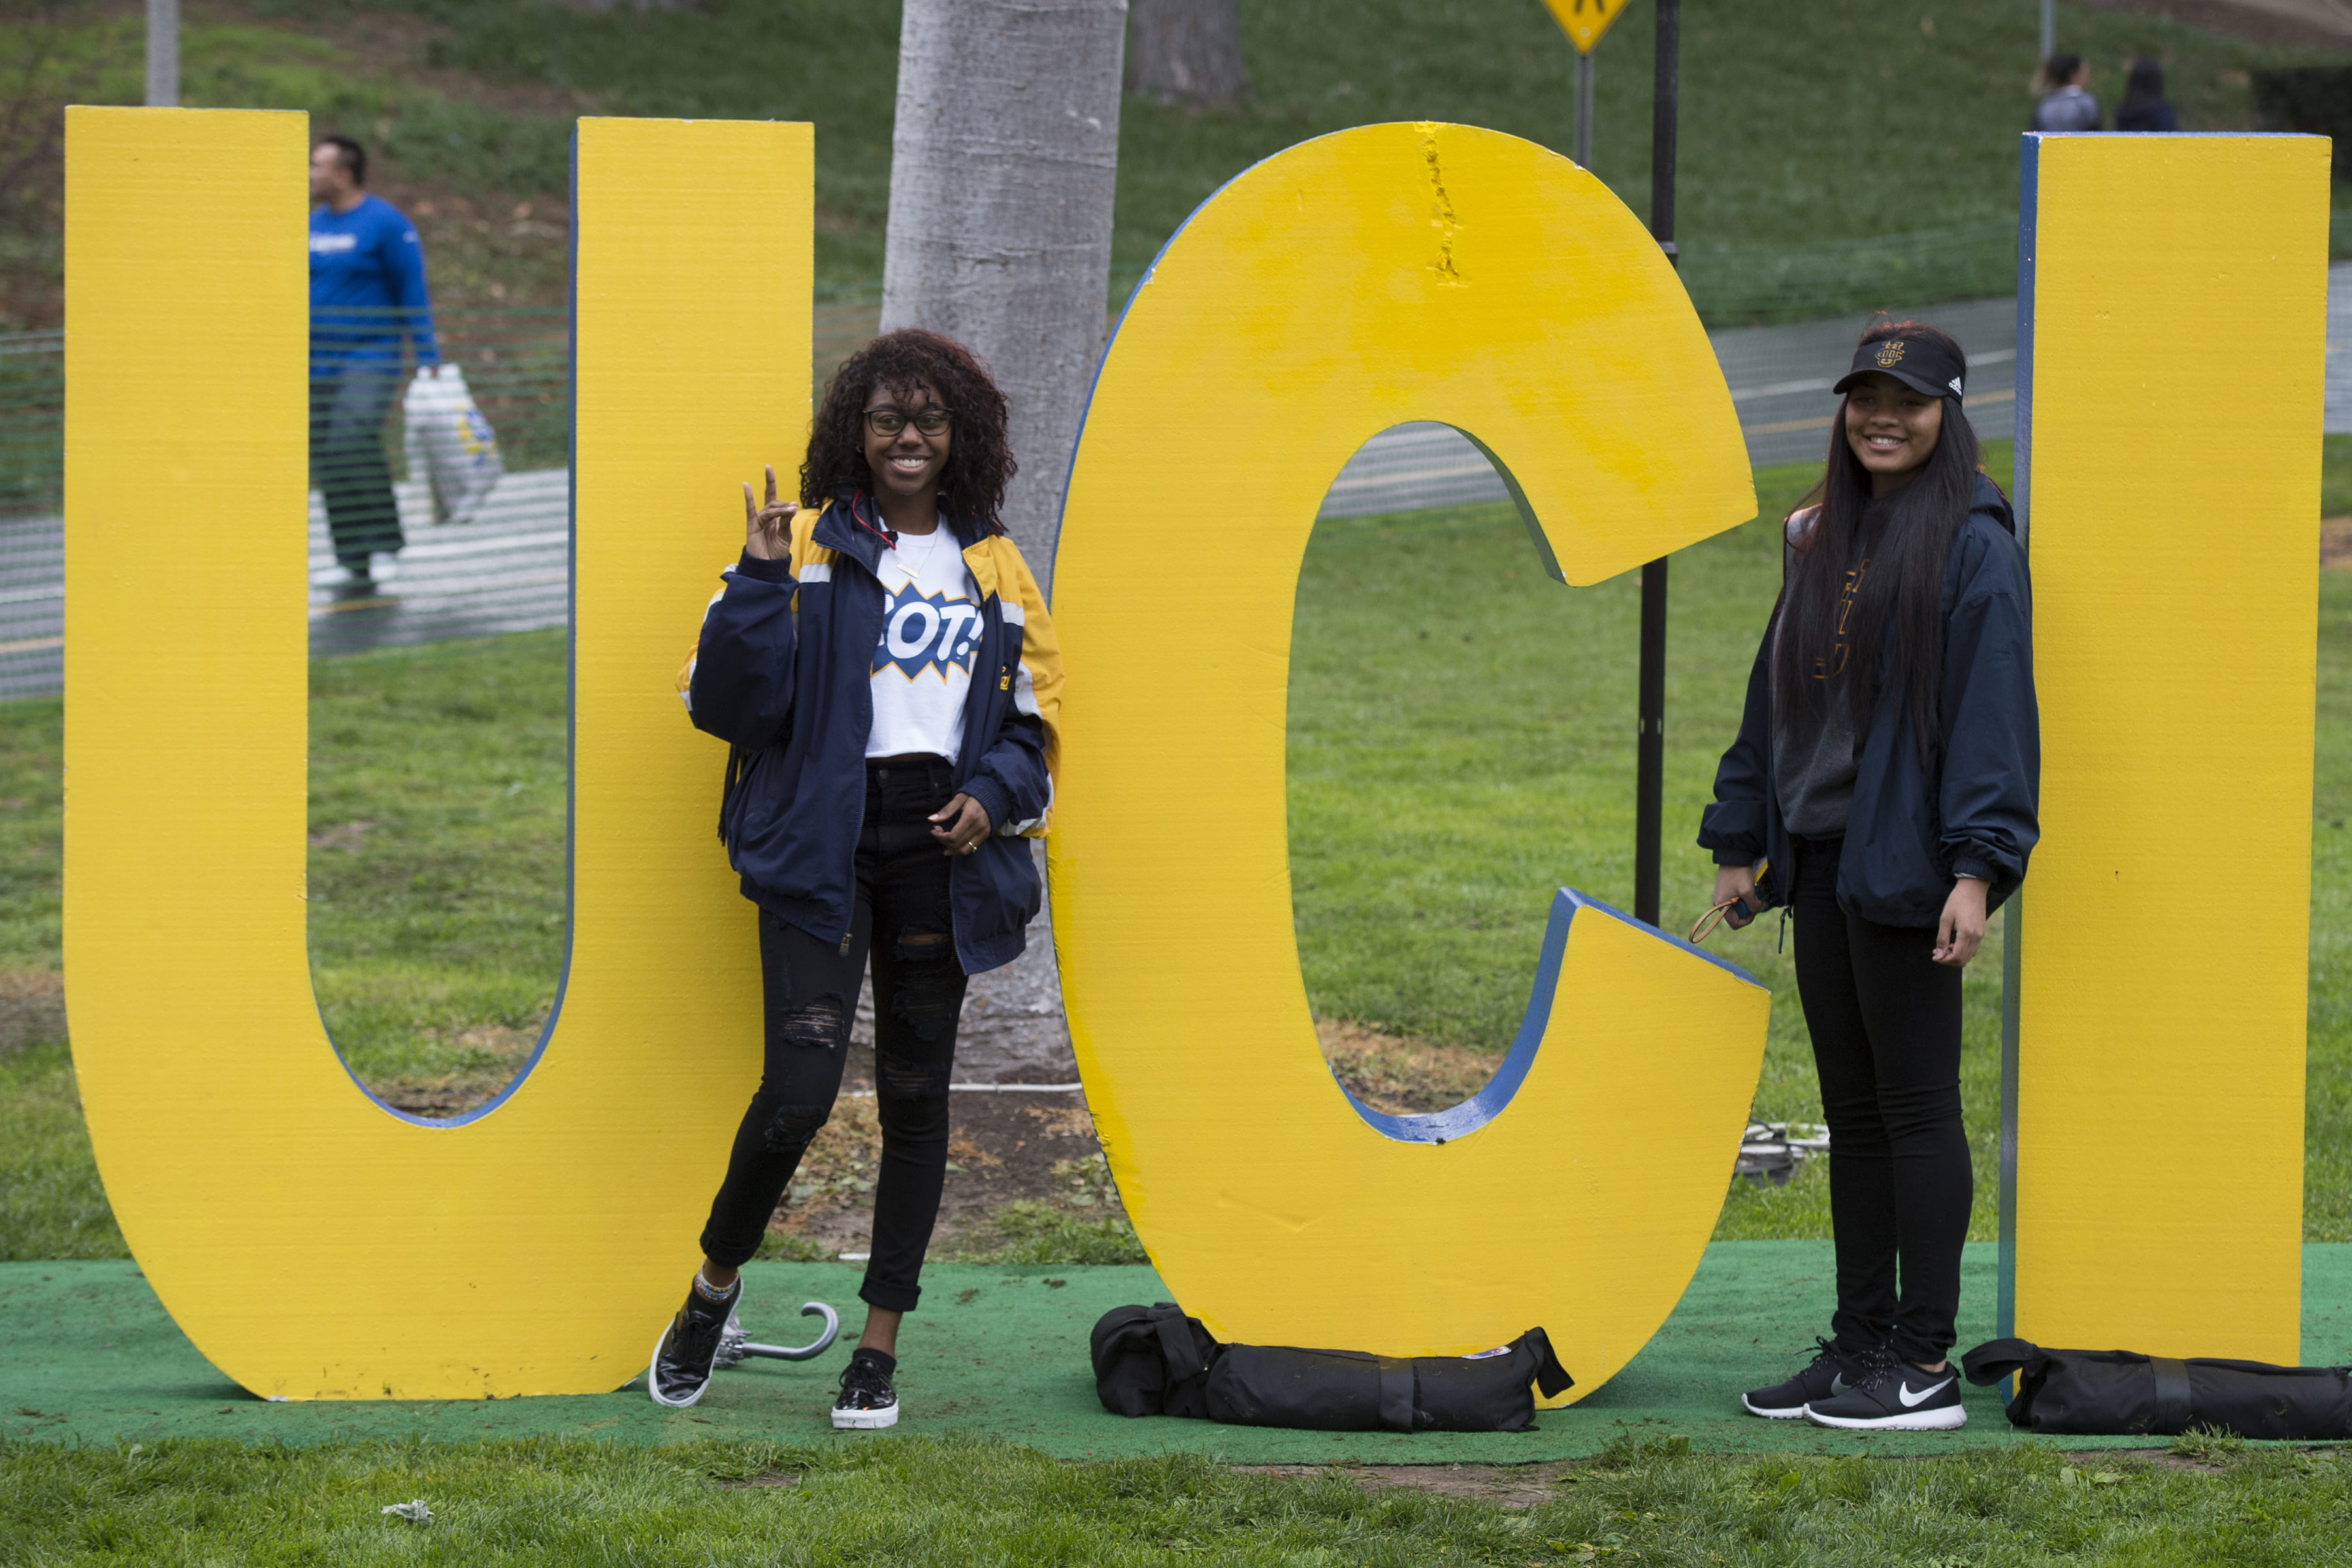 Thumbnail for UCI News - 'Doing the most for the American dream'